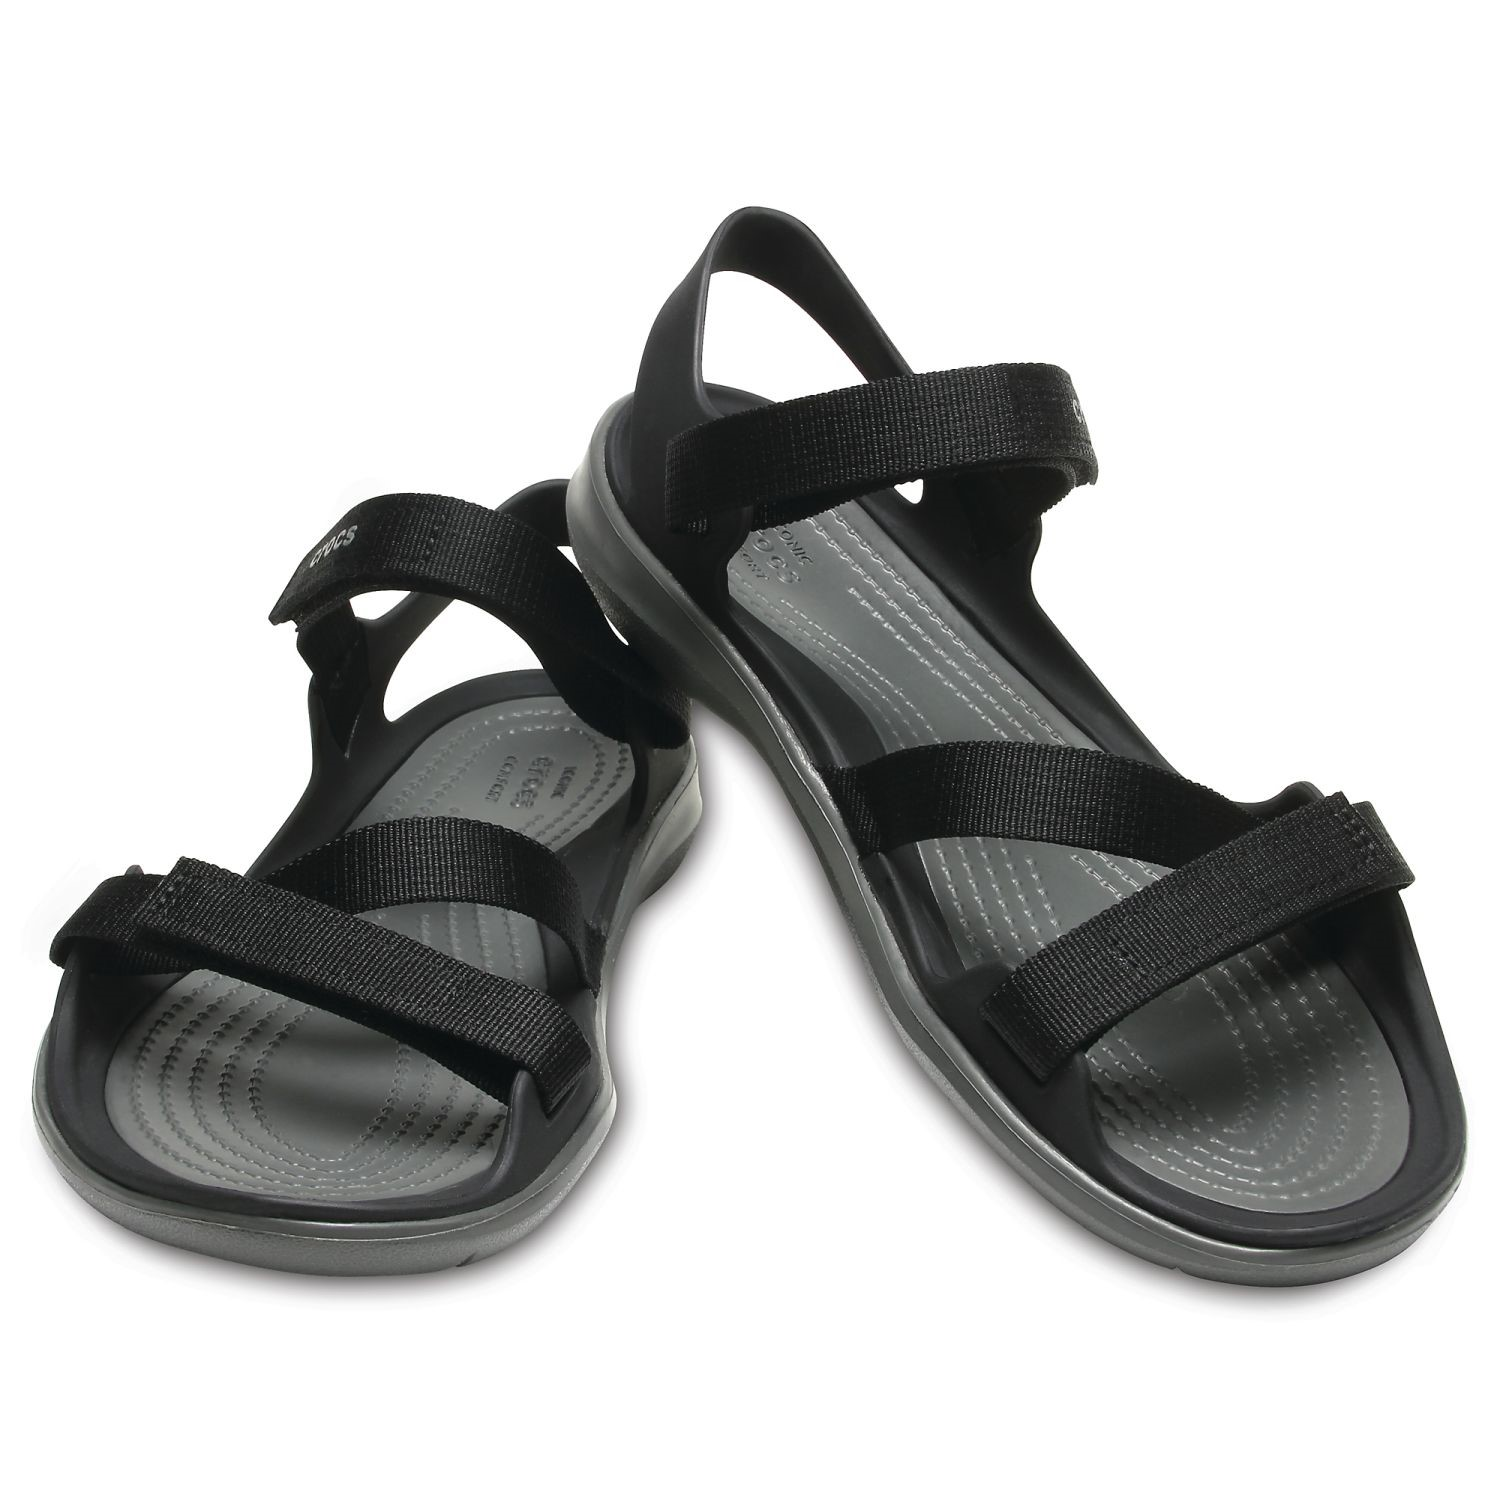 53e00049a646 Crocs Swiftwater Webbing Sandal W - Sandals - Everyday shoes - Shoes -  Timarco.eu